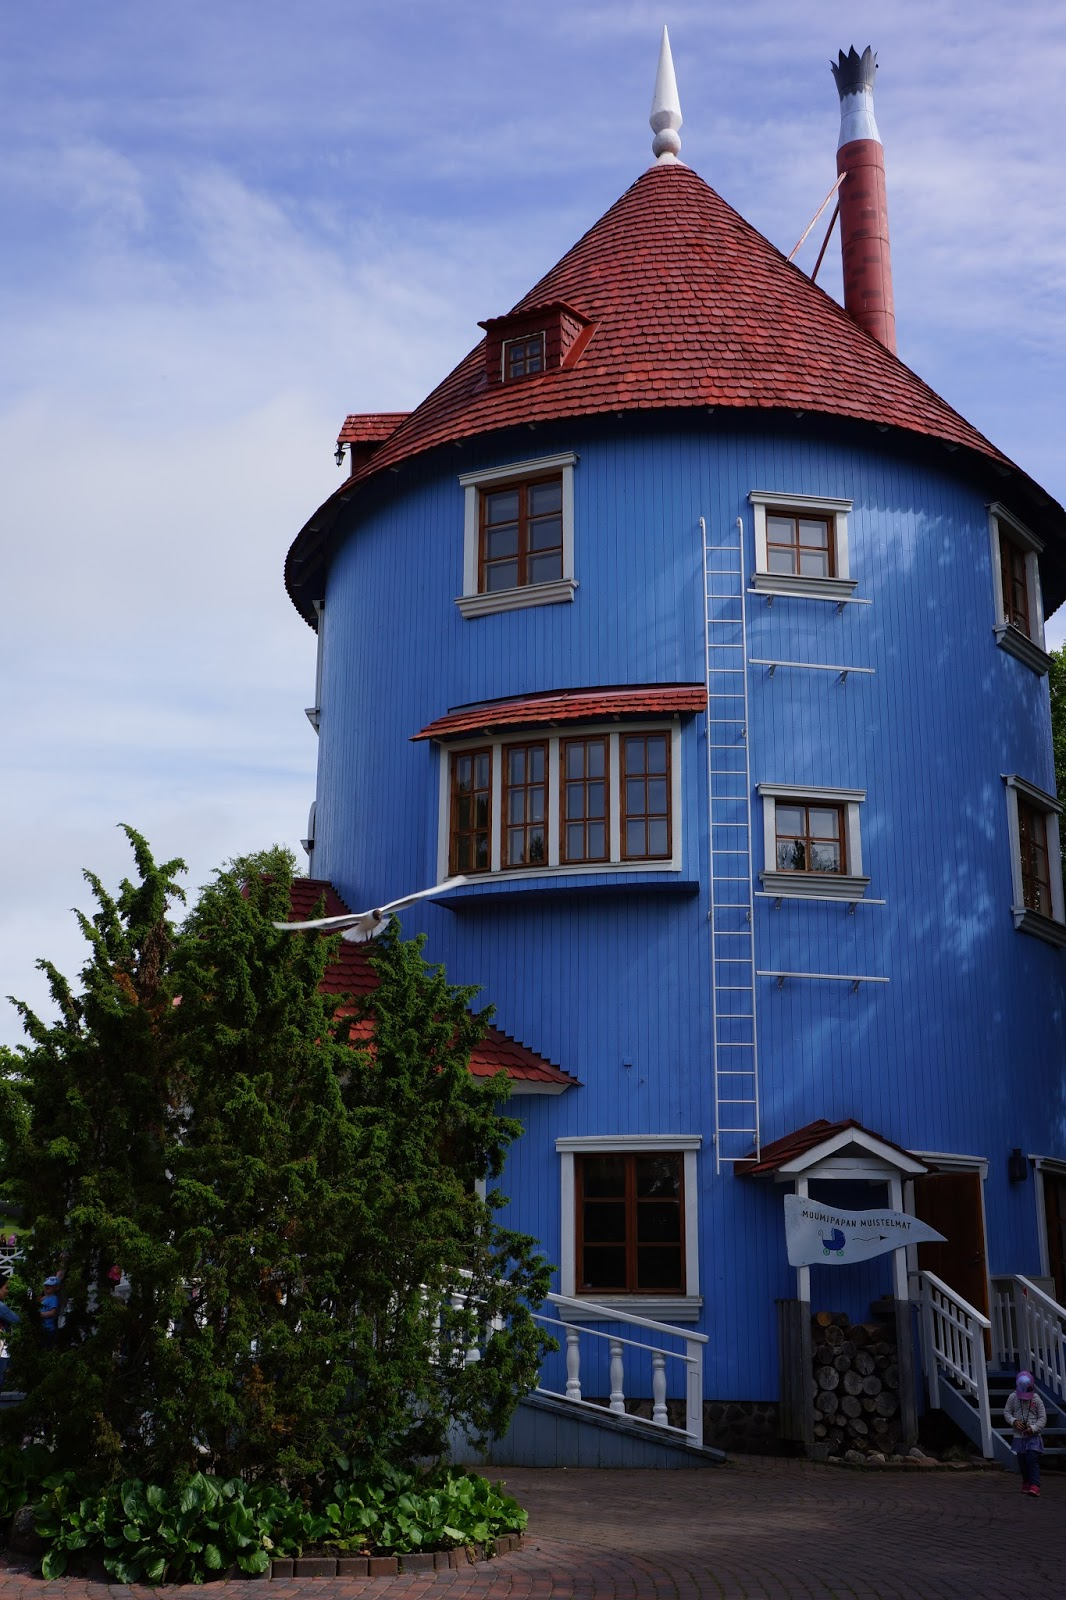 moomin world finland moominhouse